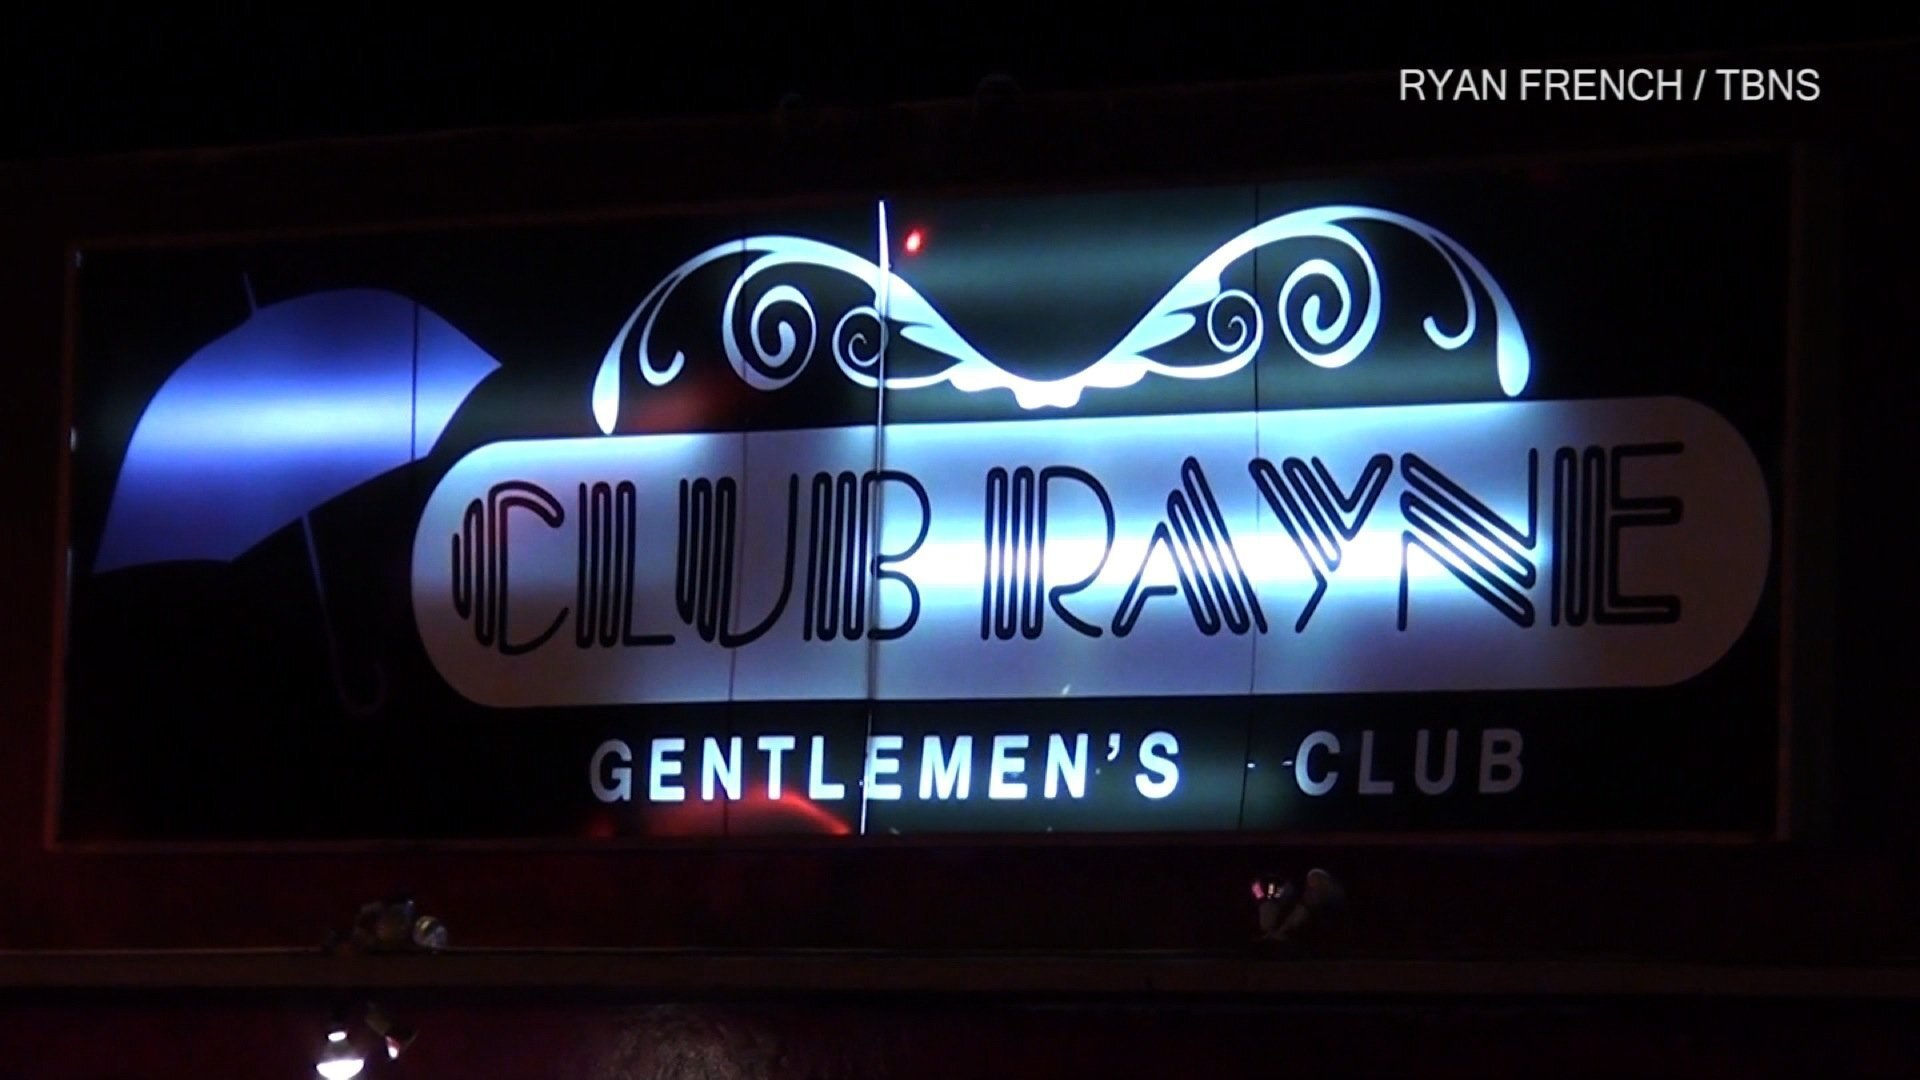 List of gentlemen's clubs in the united states